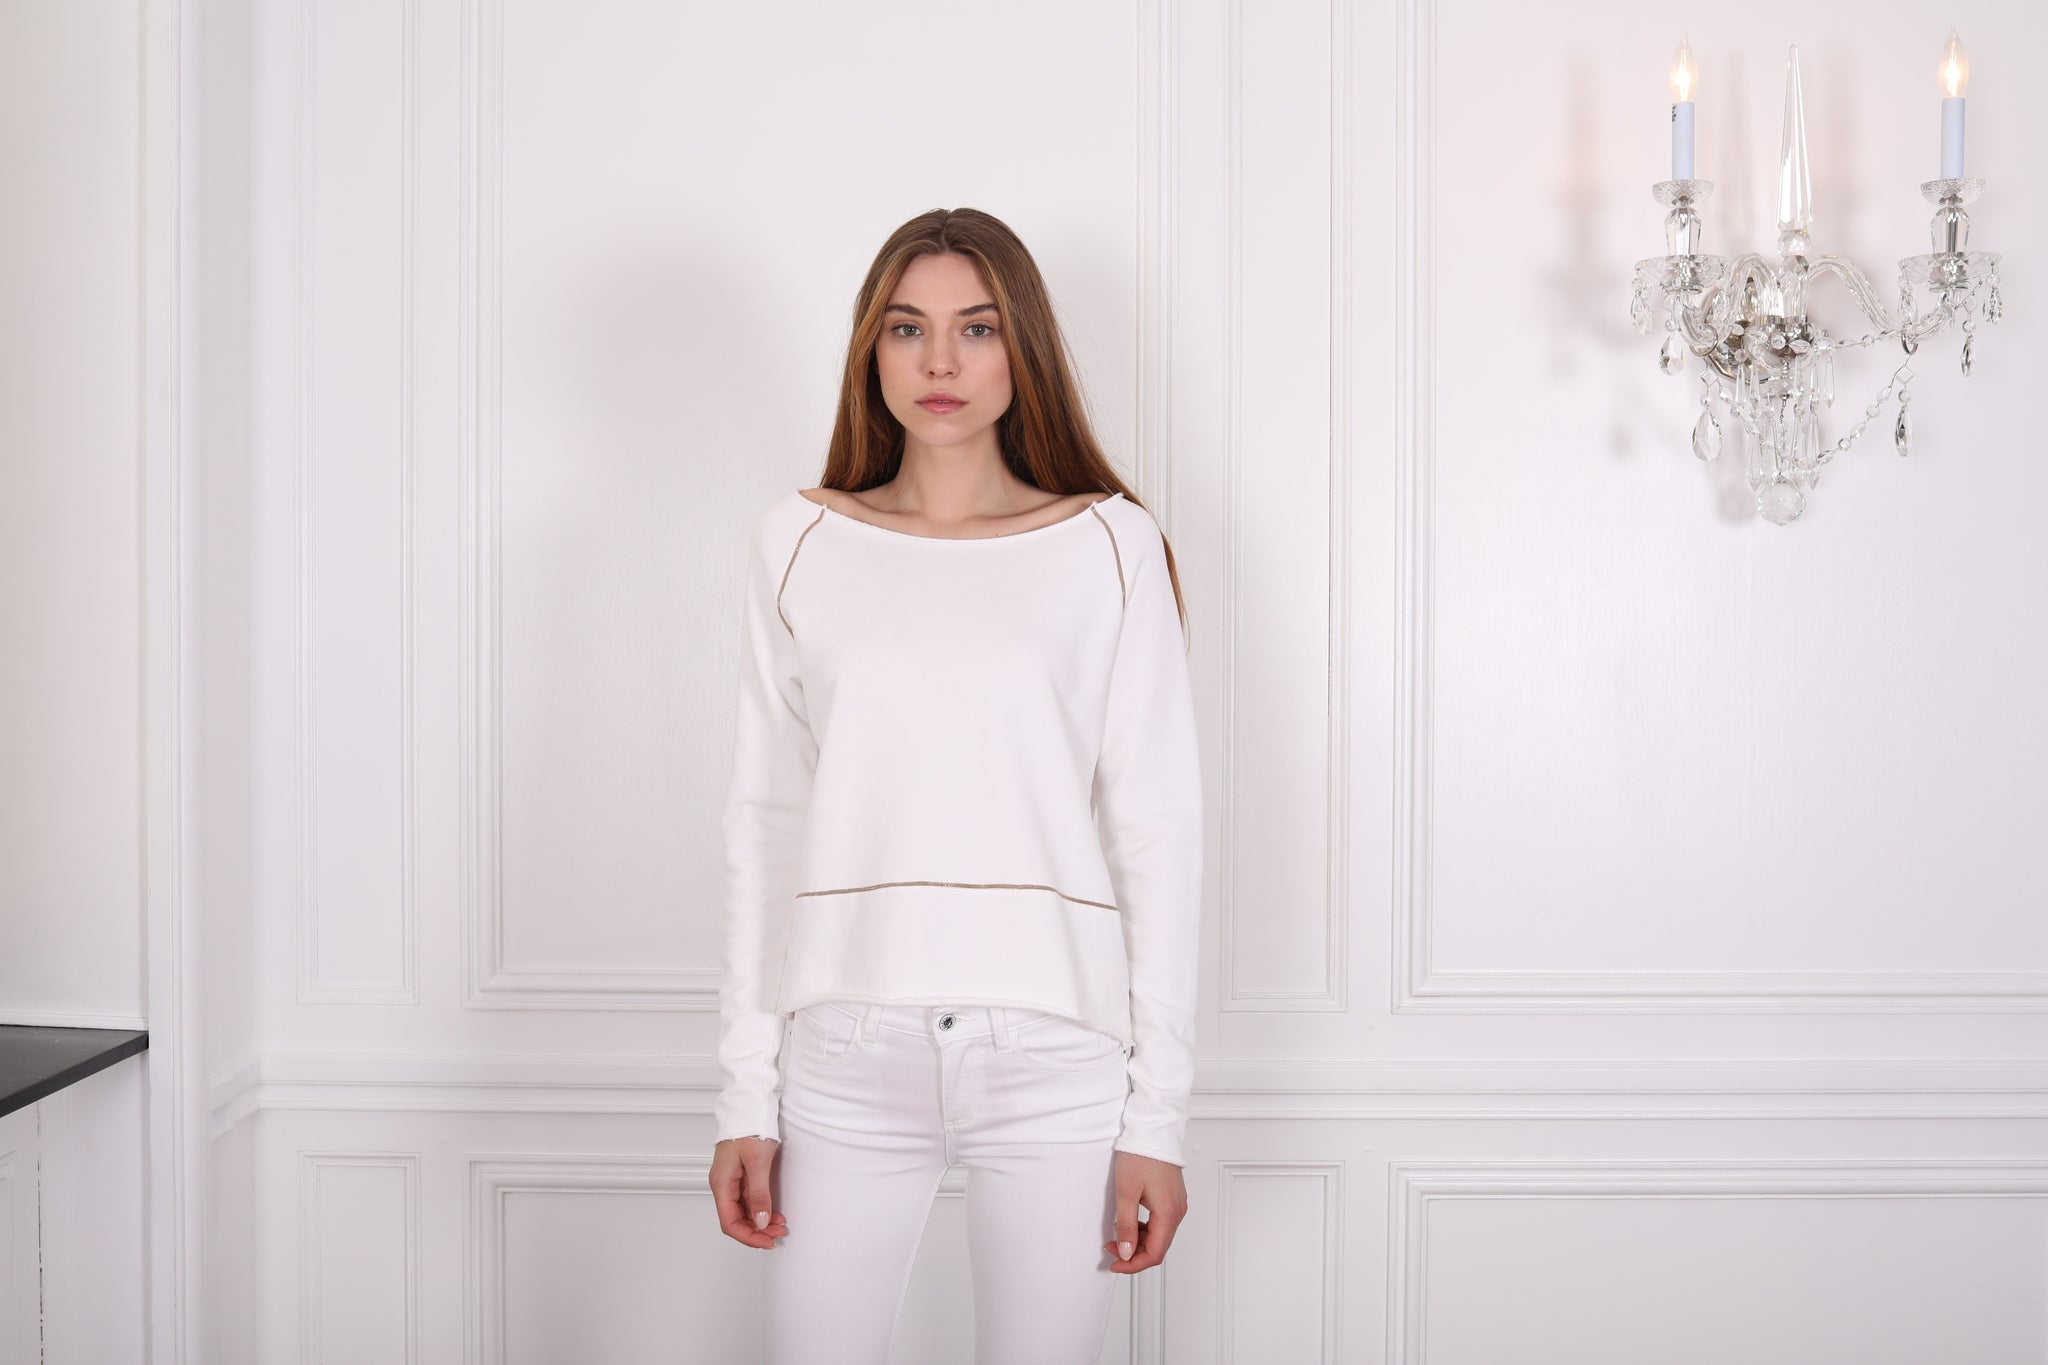 Cara Metallic Trim Sweater